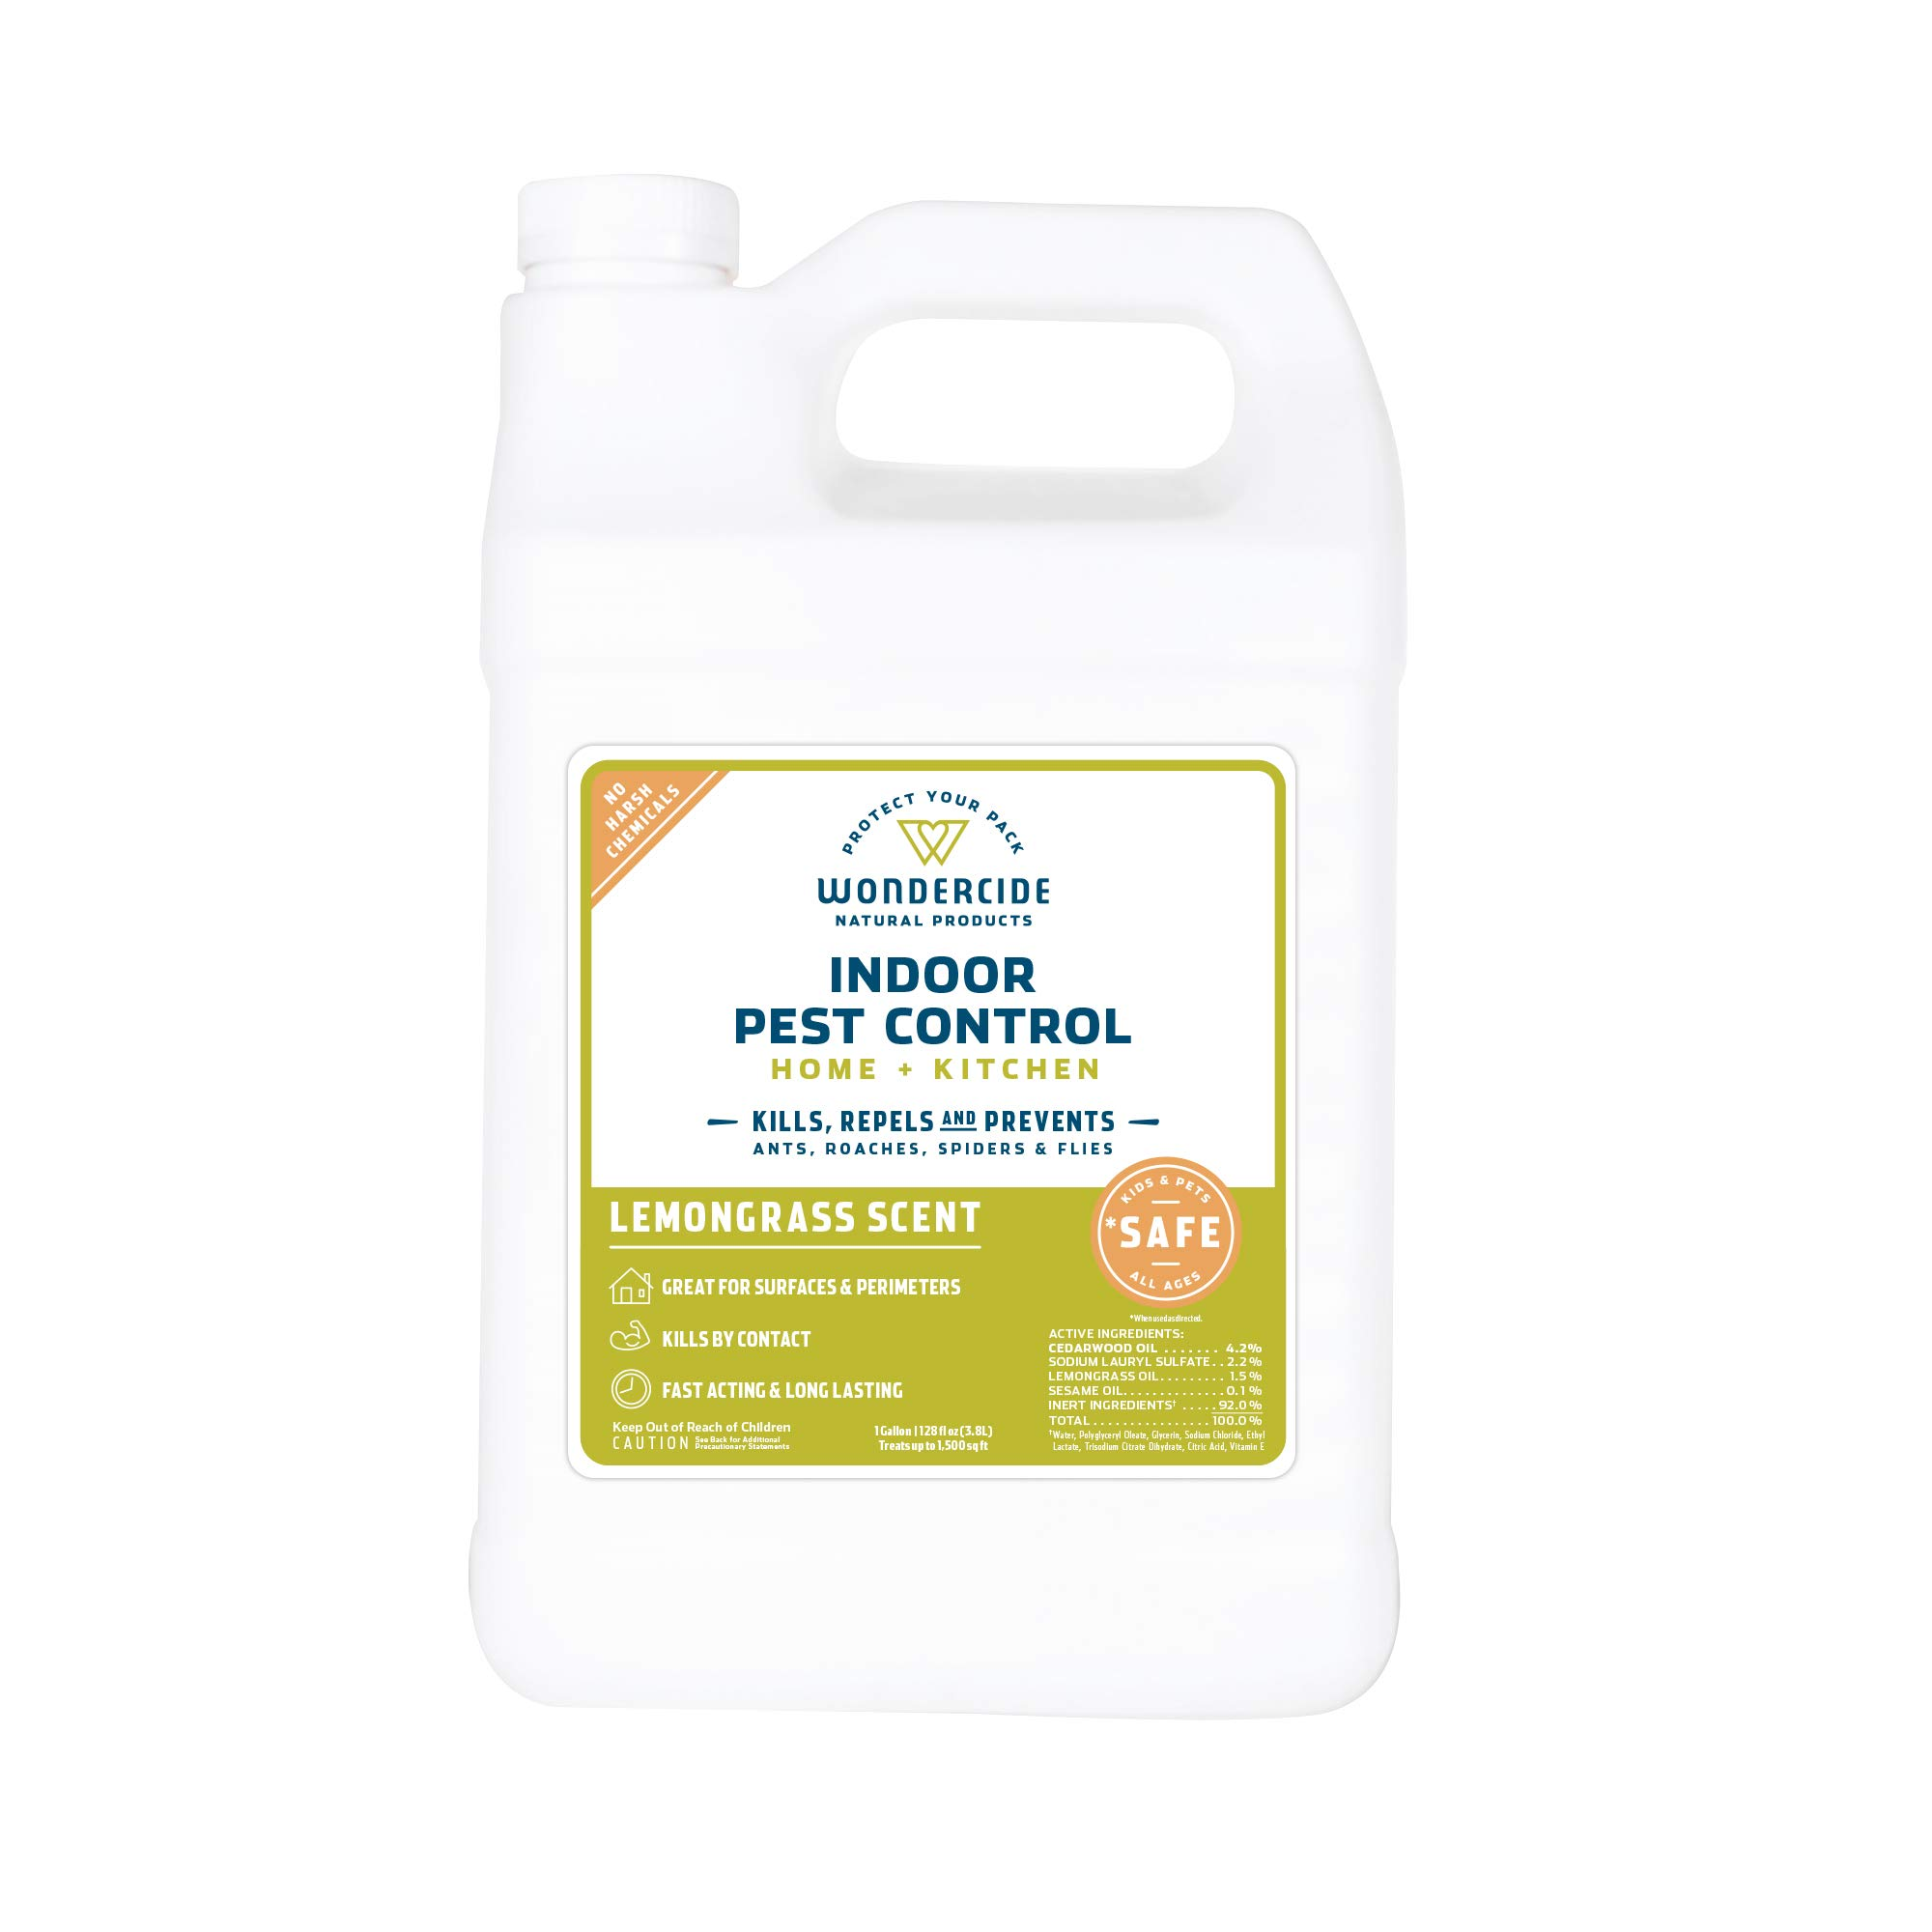 Wondercide Natural Indoor Pest Control Spray for Home and Kitchen - Fly, Ant, Spider, Roach, and Bug Killer and Repellent - 128 oz Lemongrass by Wondercide